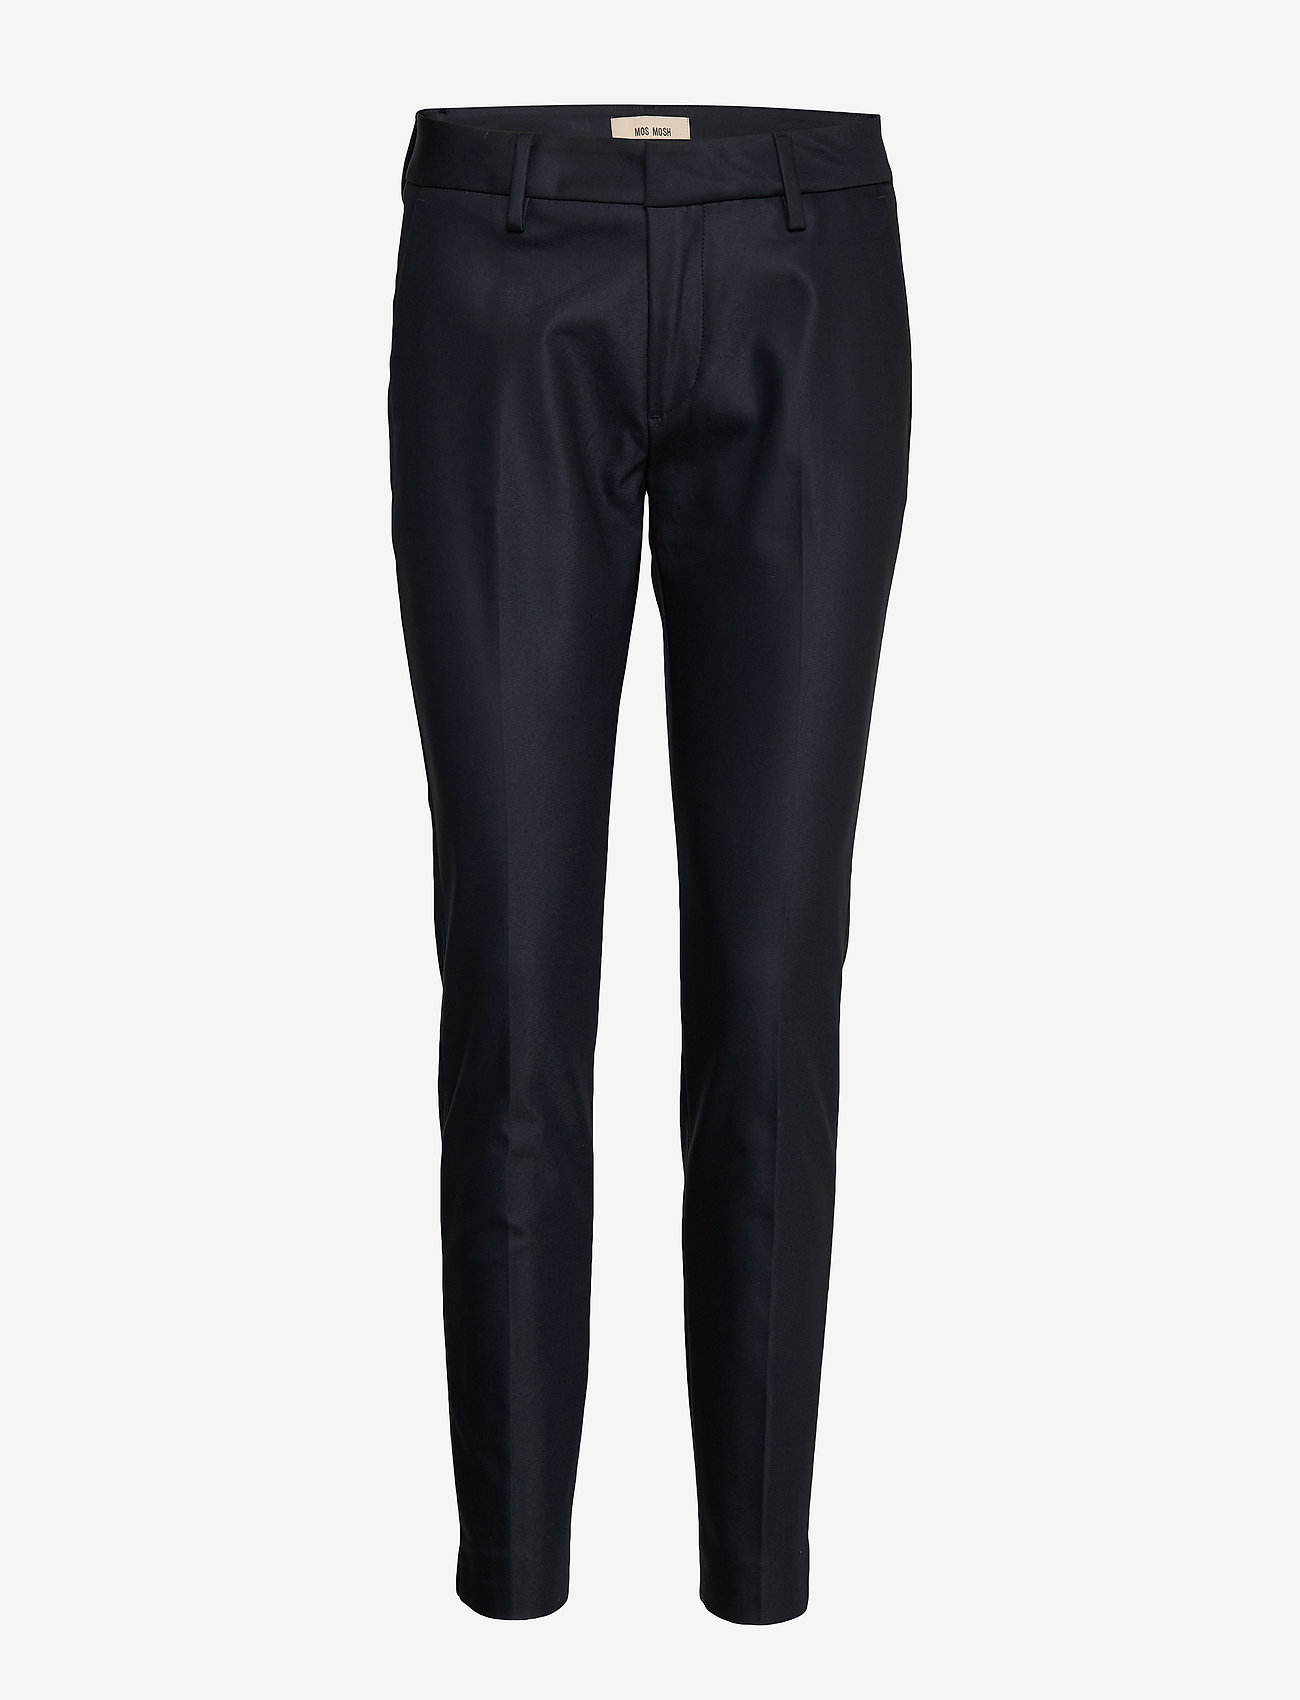 Abbey Night Pant Sustainable (Navy) (874.30 kr) - MOS MOSH